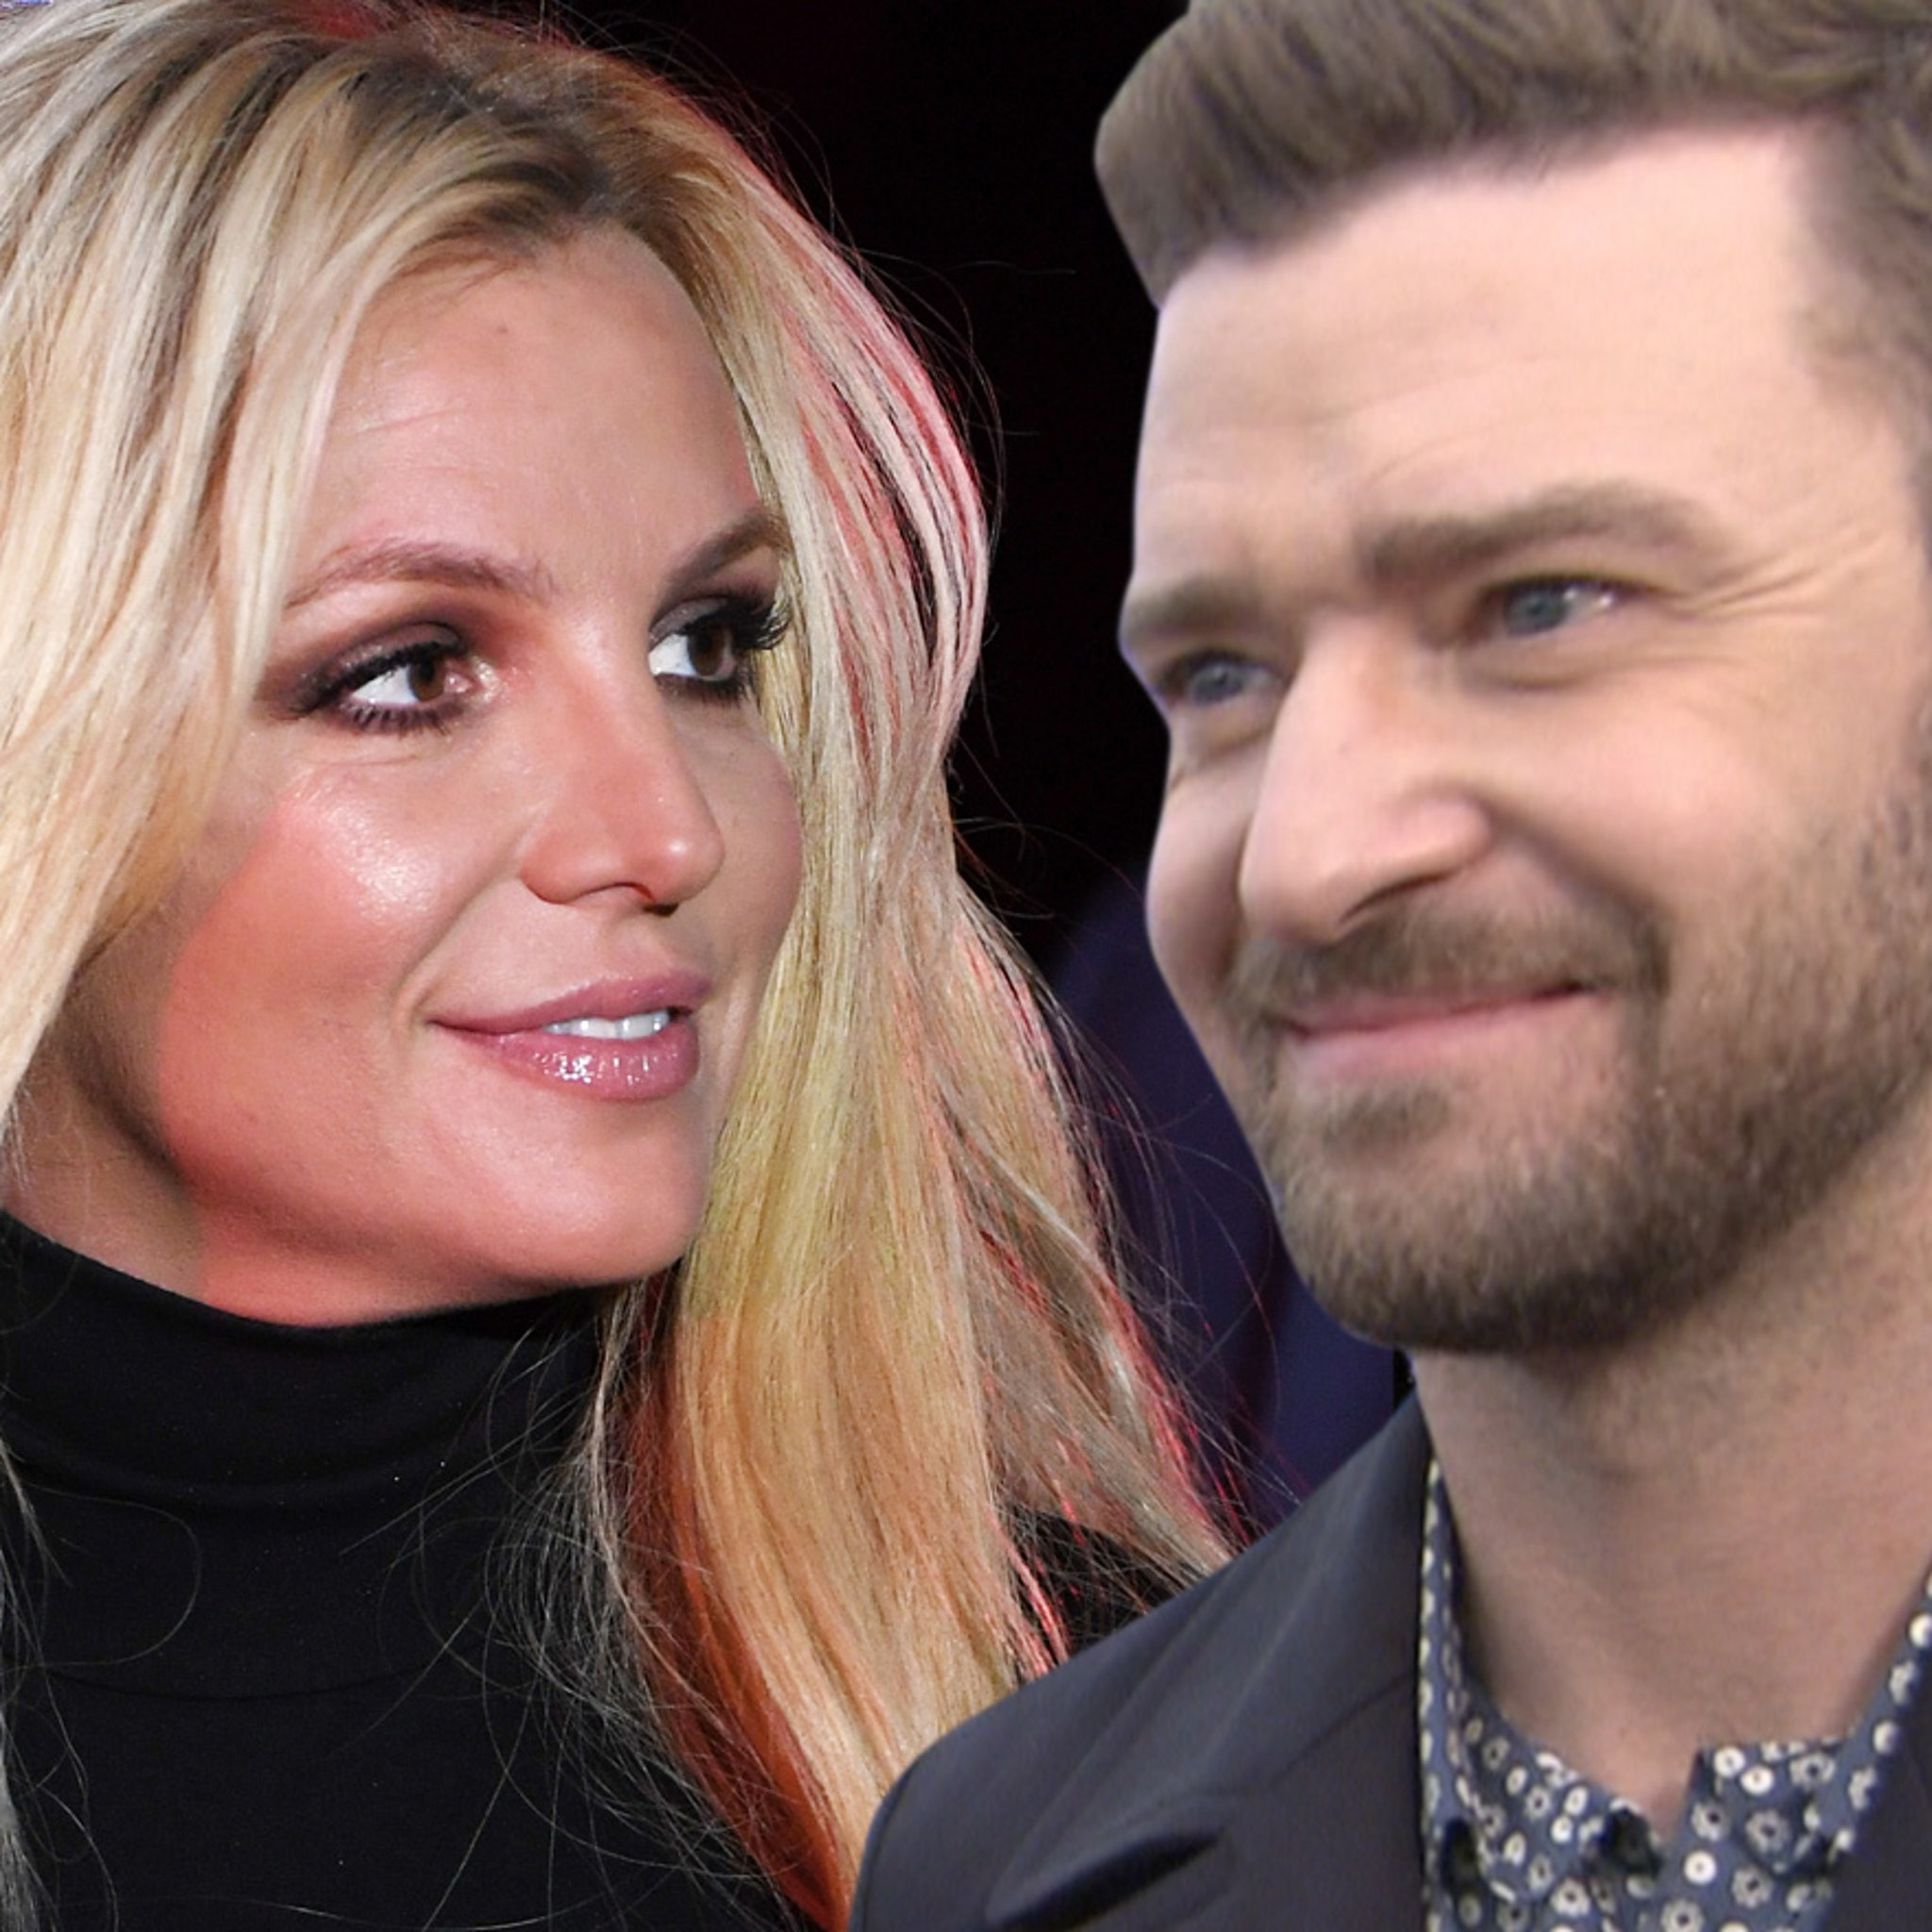 Britney Spears Talks Justin Timberlake Breakup In Shout Out Video